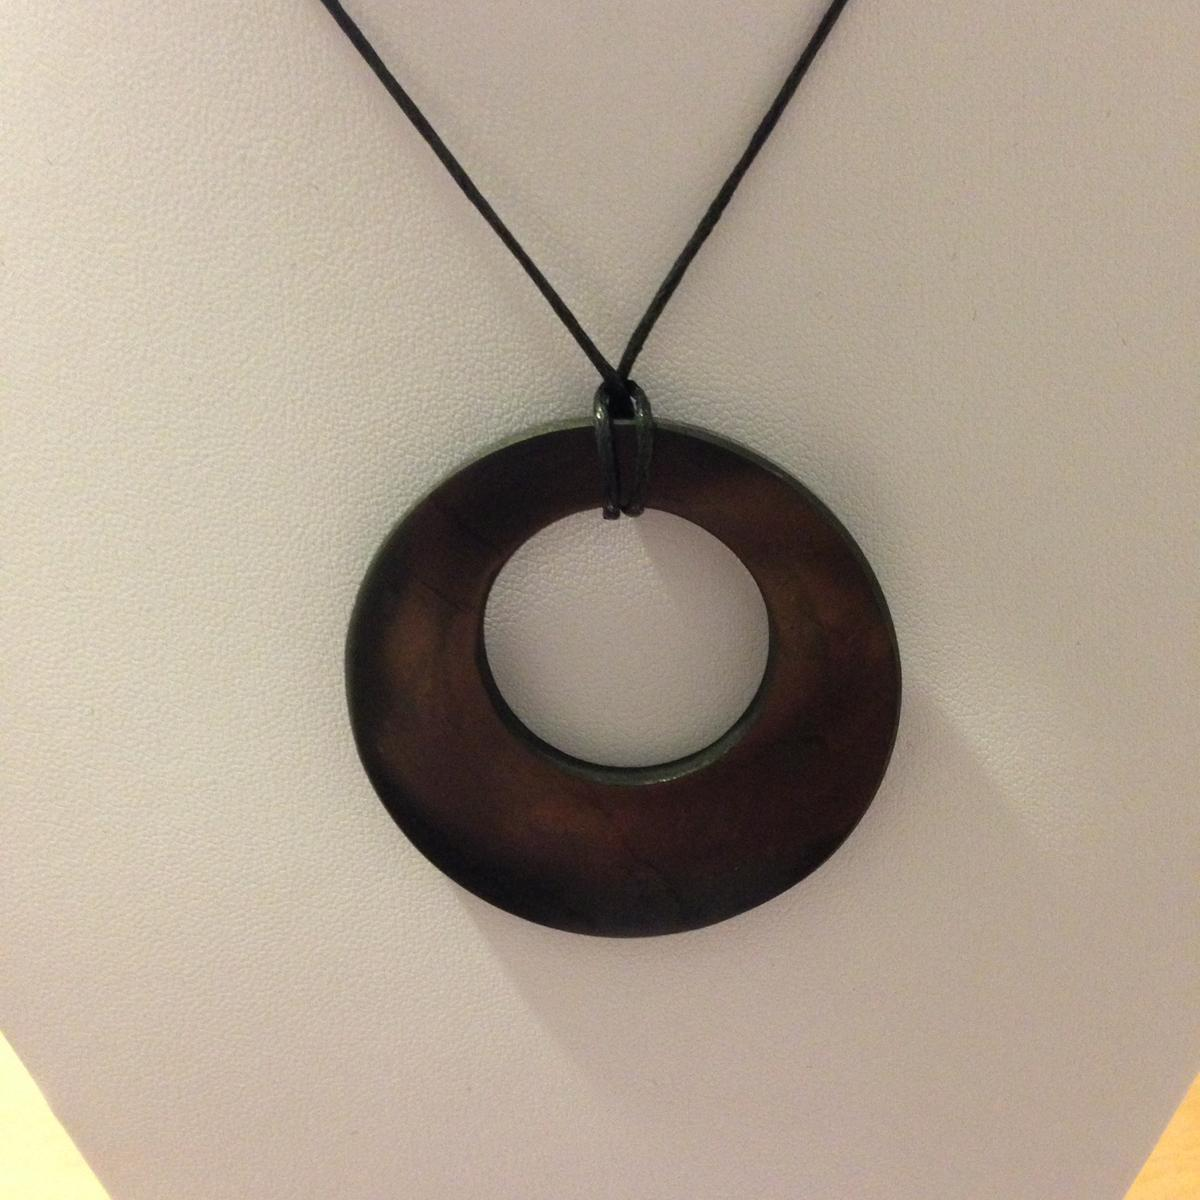 shungite pendant quot circle in a circle quot the tree